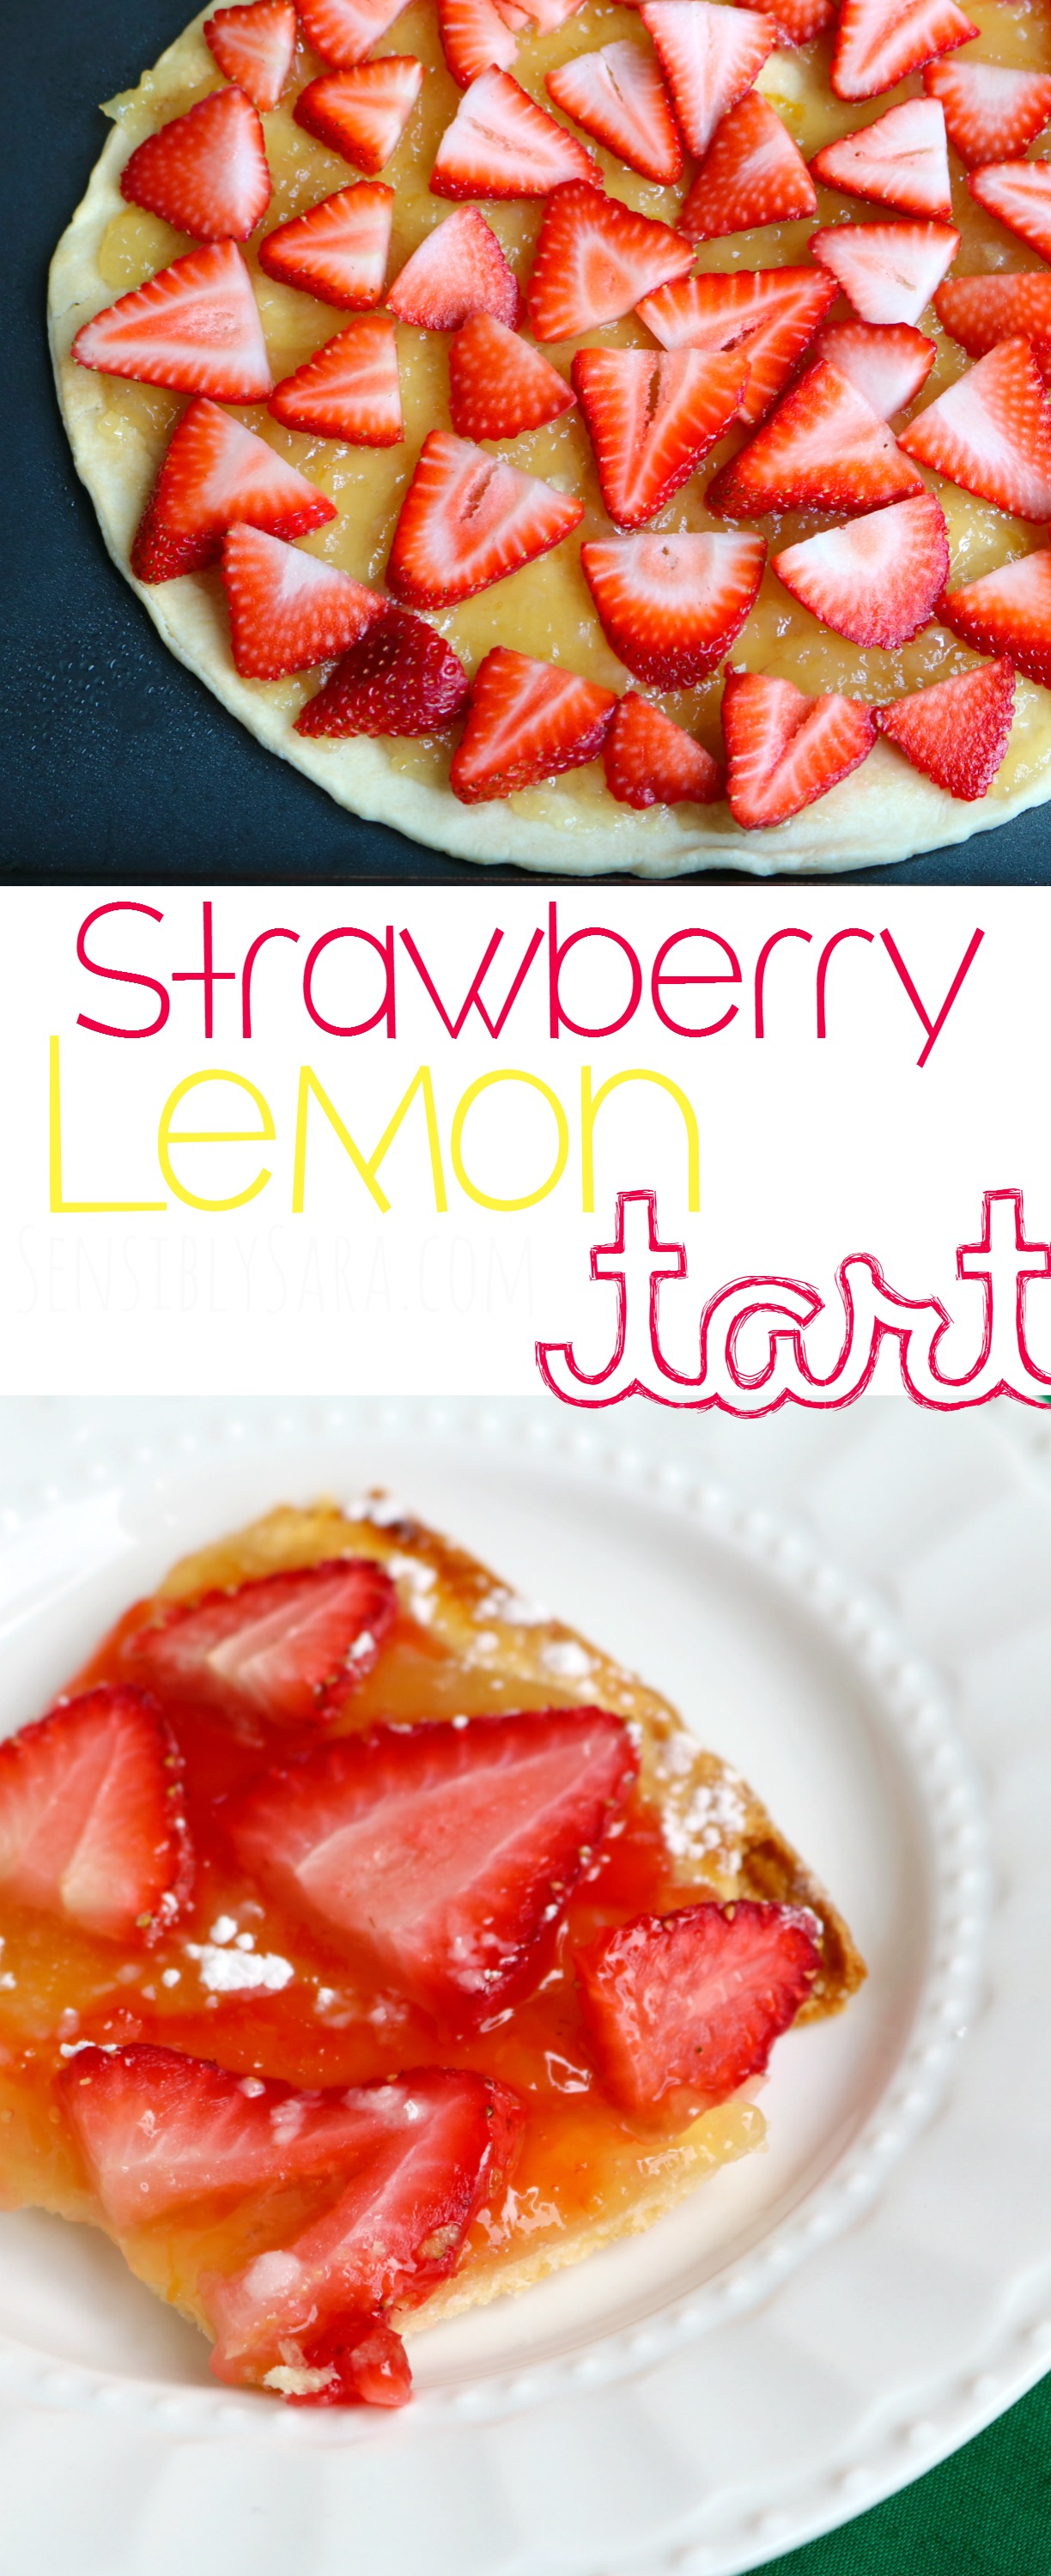 Strawberry Lemon Tart Recipe | SensiblySara.com